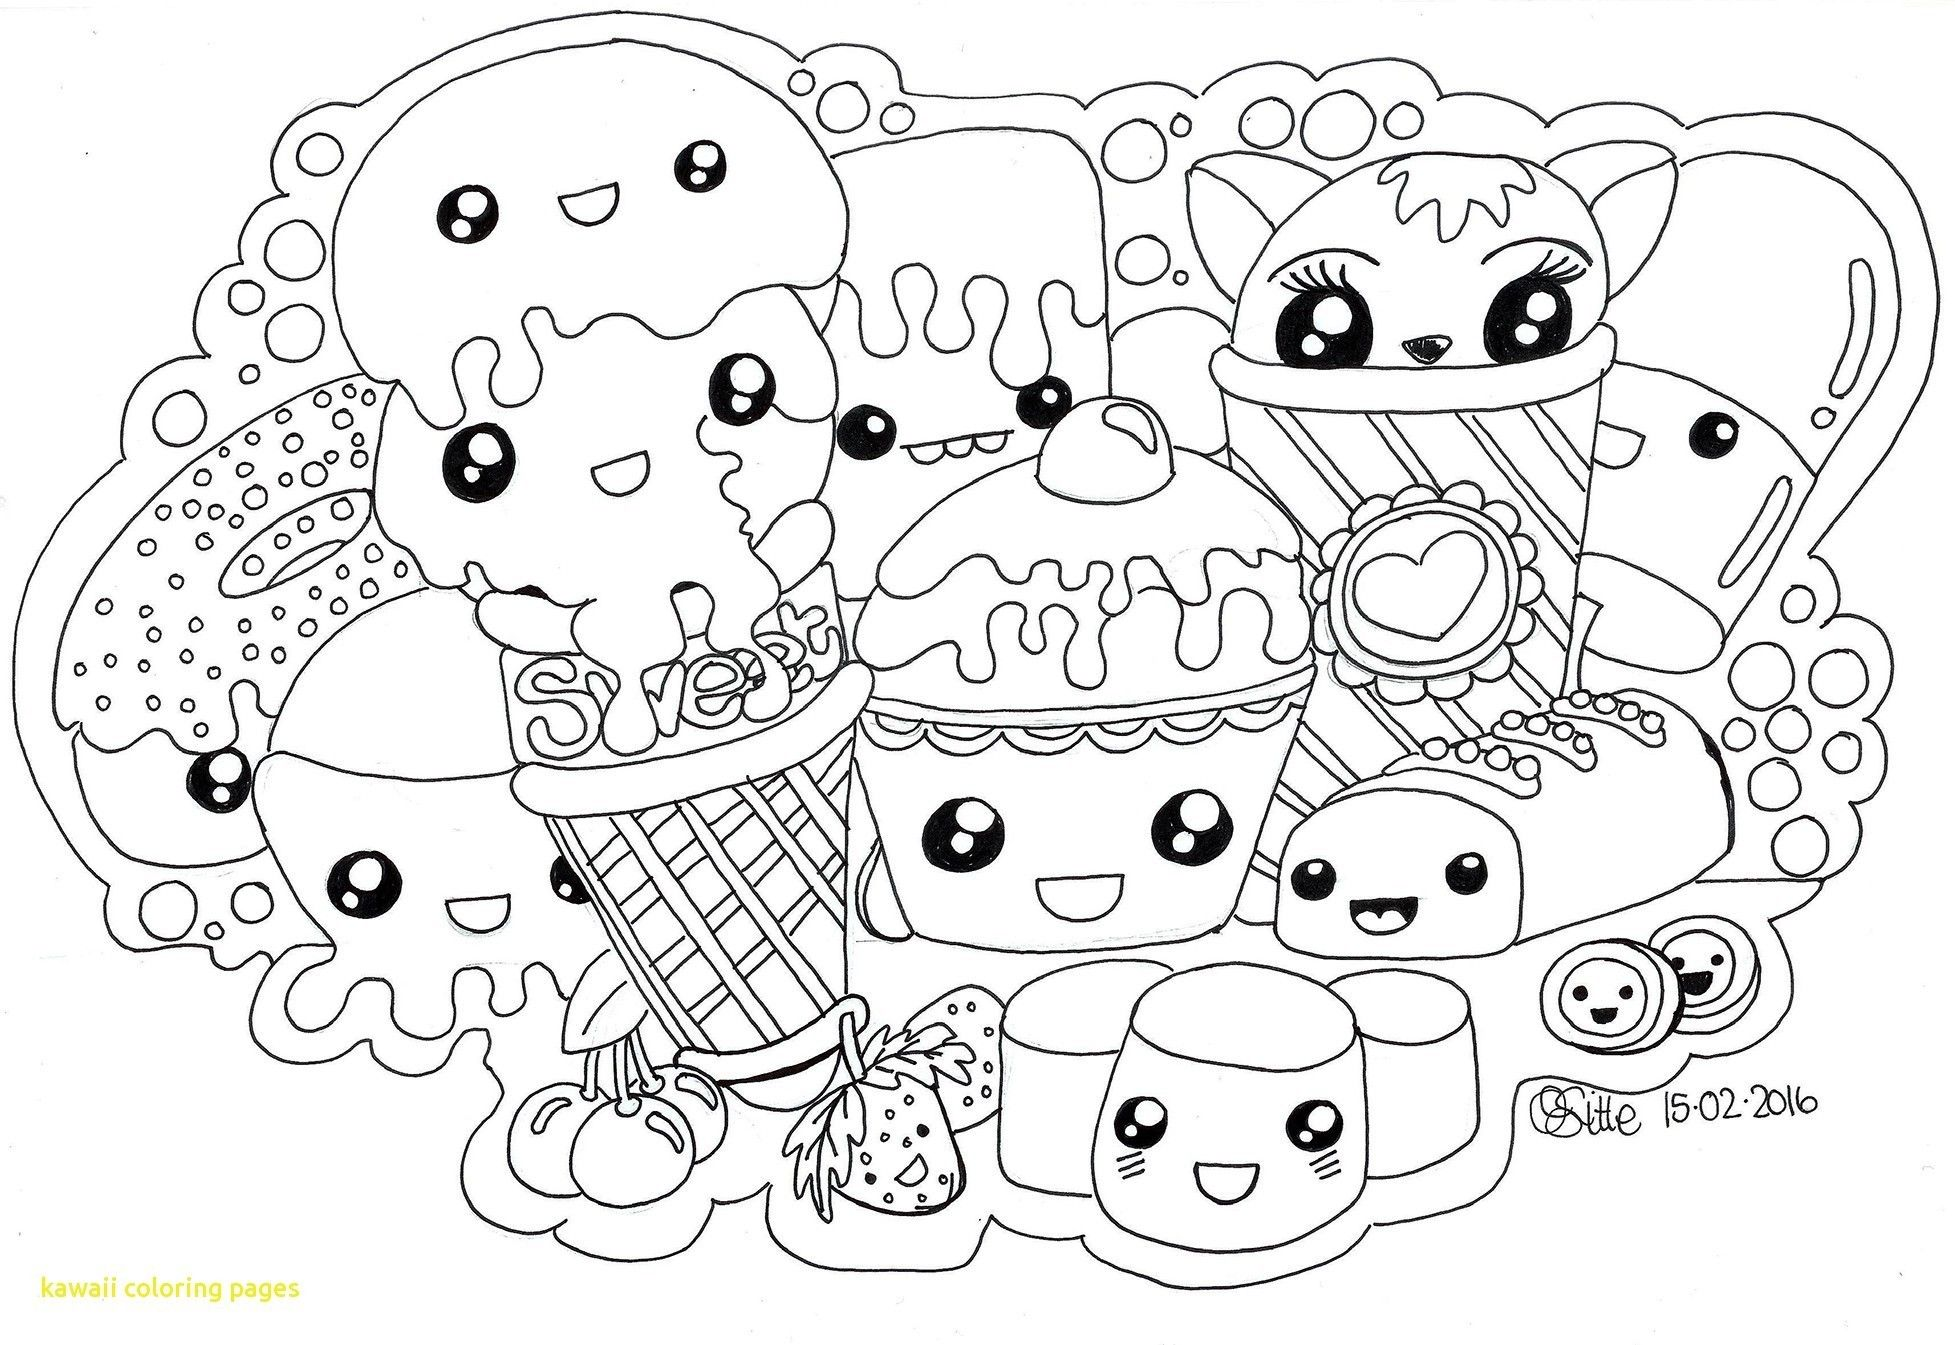 Collection of Free kawaii coloring pages Download them